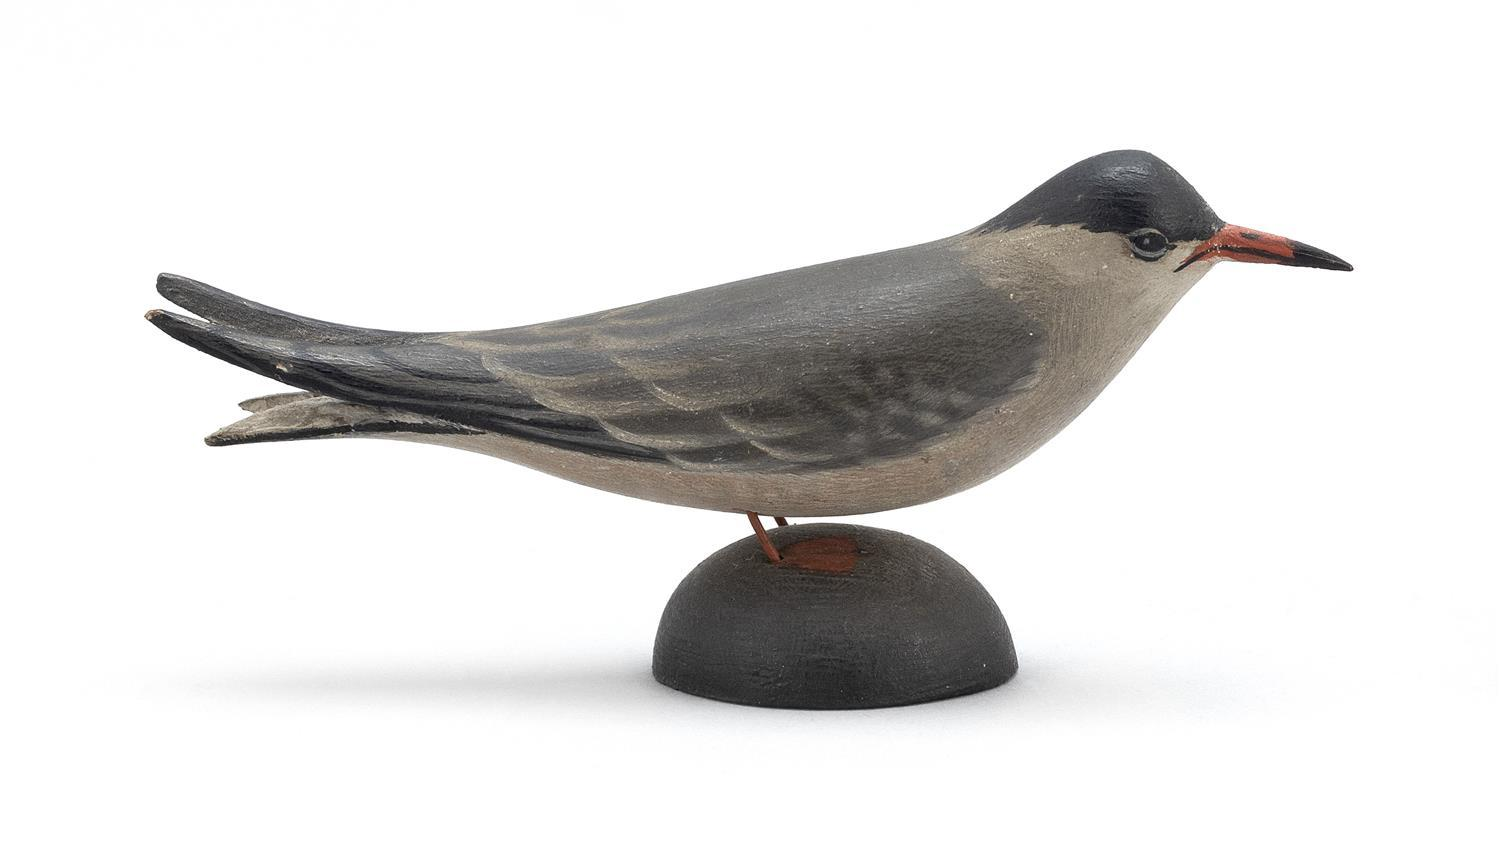 "A. ELMER CROWELL MINIATURE COMMON TERN Unsigned. Length 4.25"". From the Mr. & Mrs. Ken DeLong Collection of Bird Carvings."